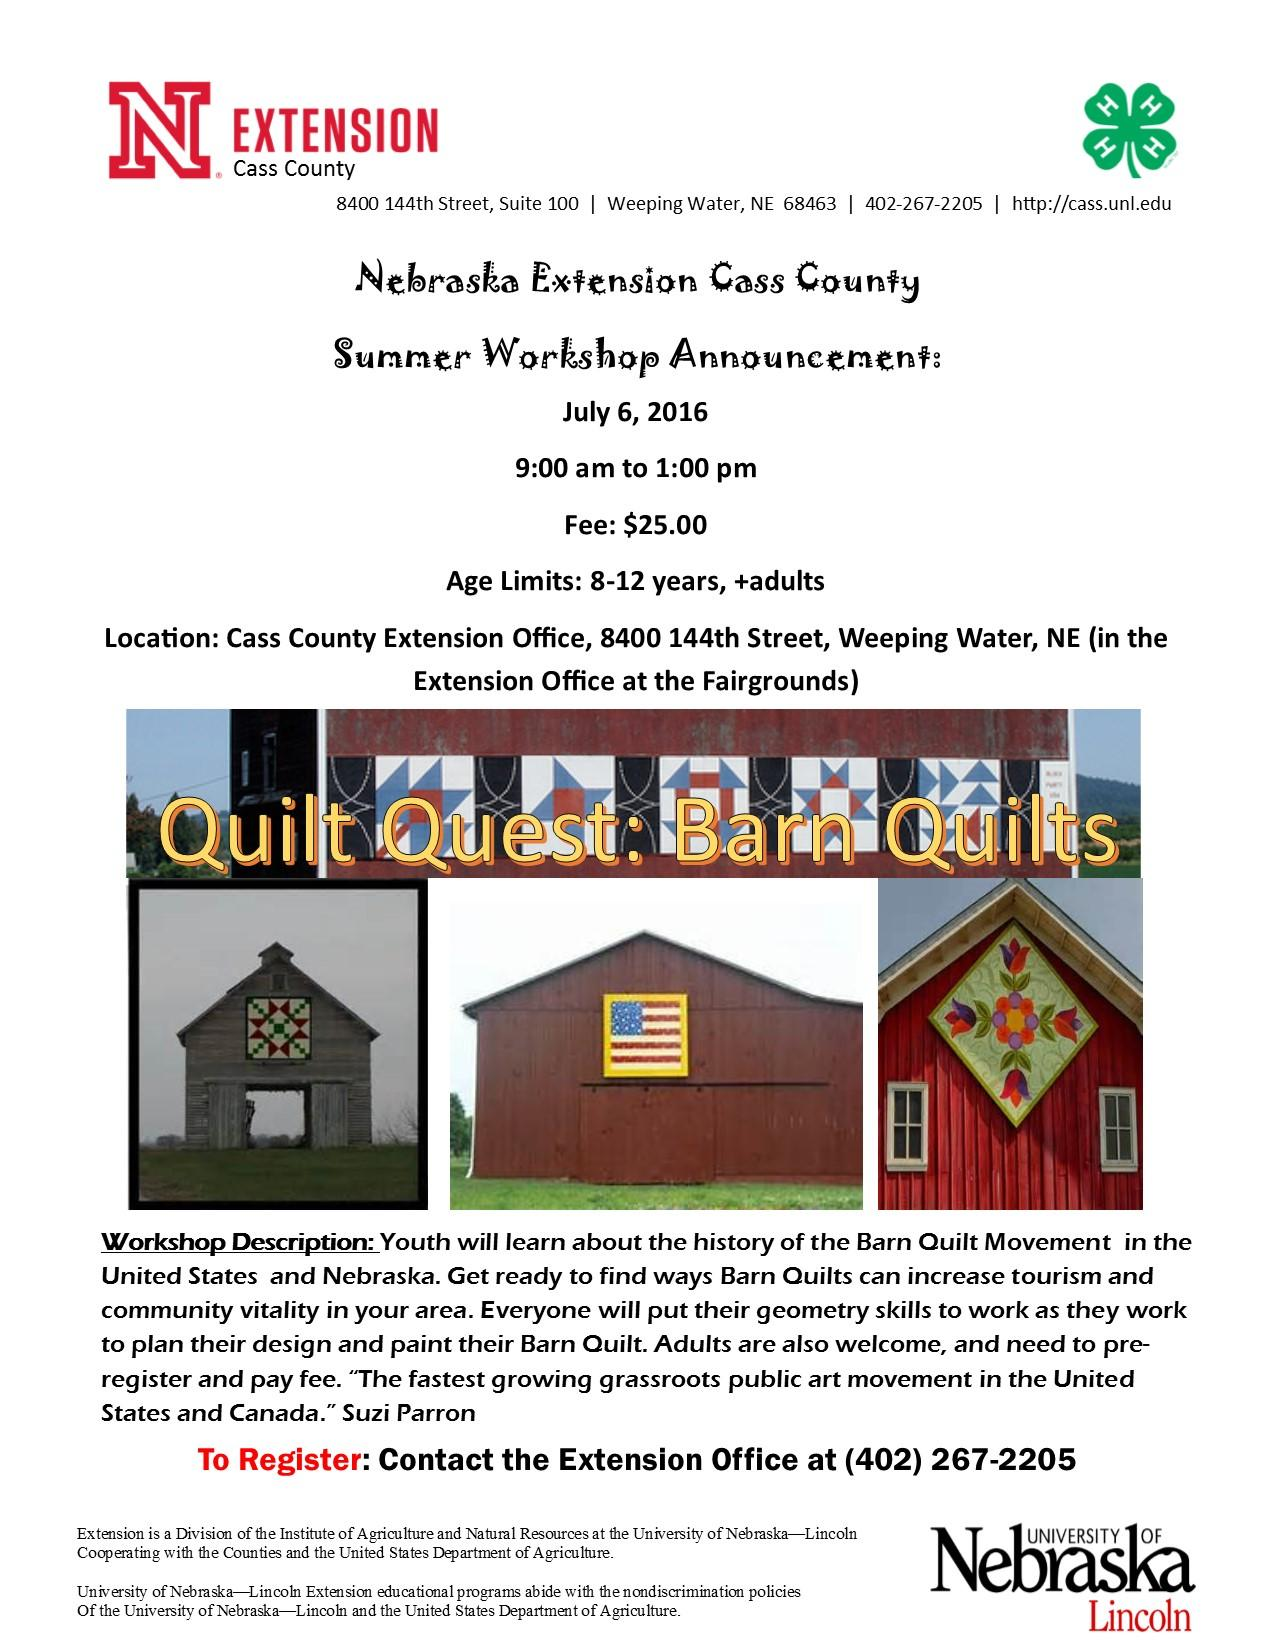 Barn Quilts flyer